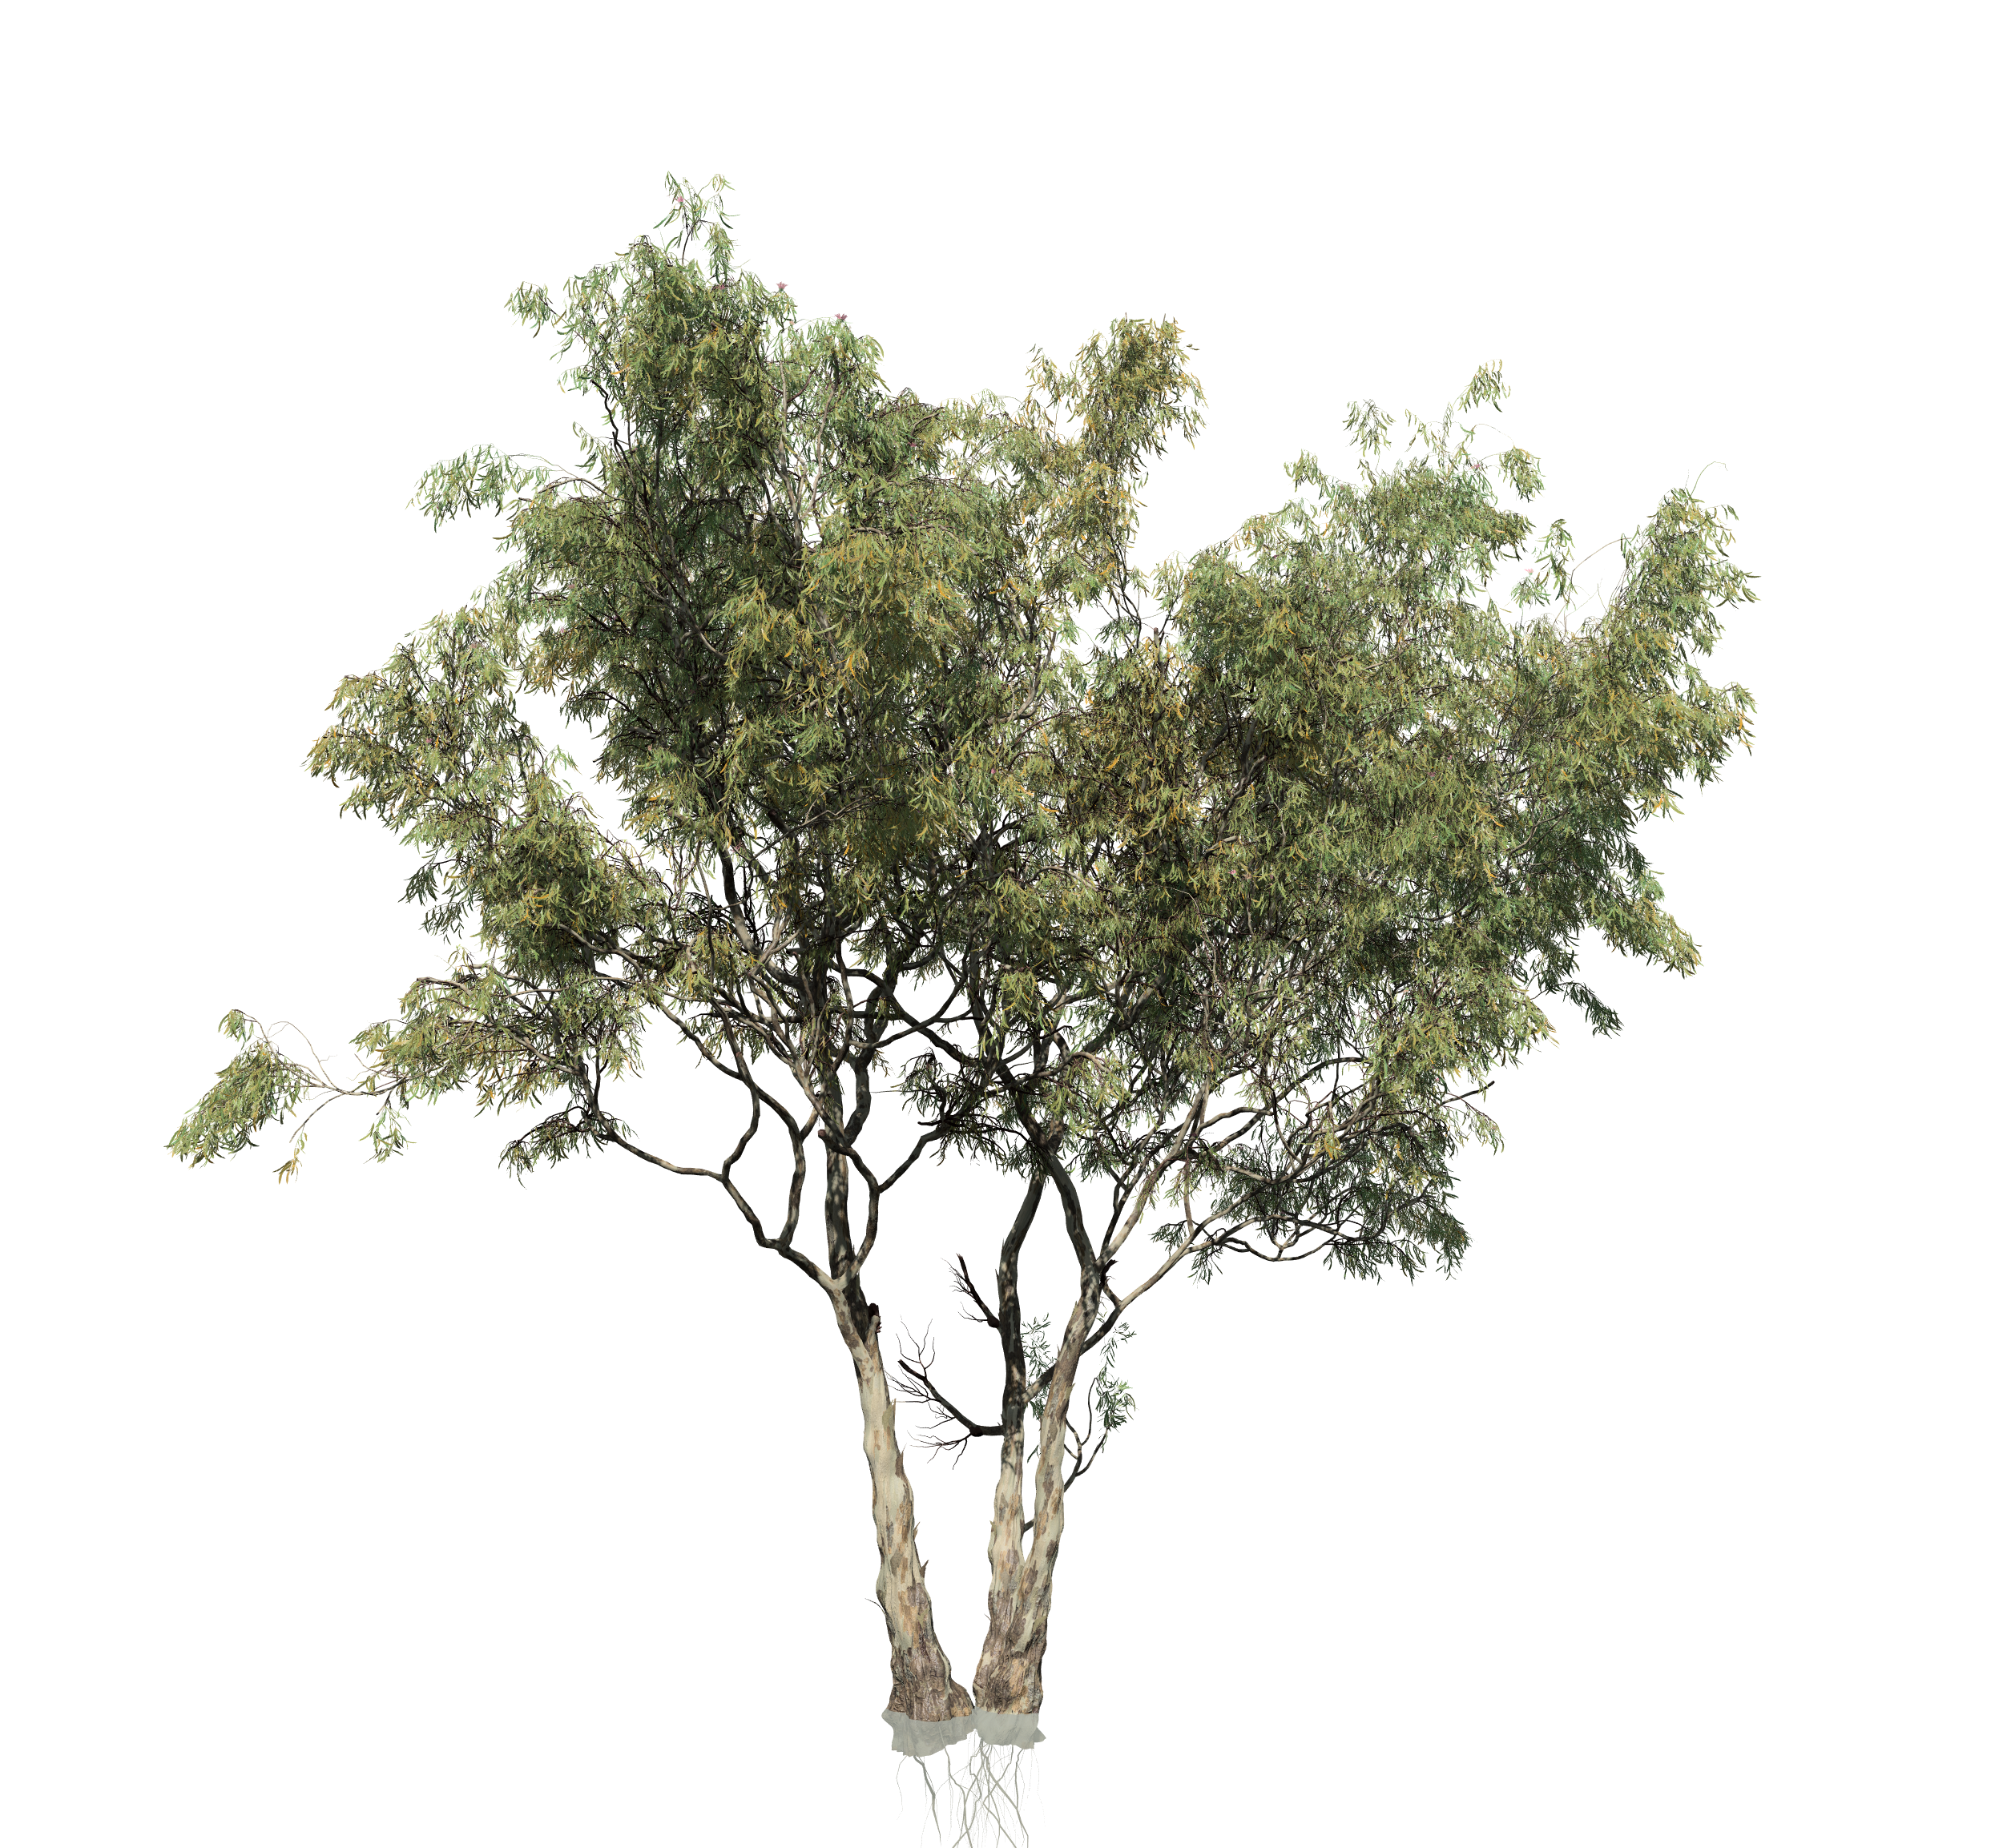 Eucalyptus tree png. Red gum forest multi